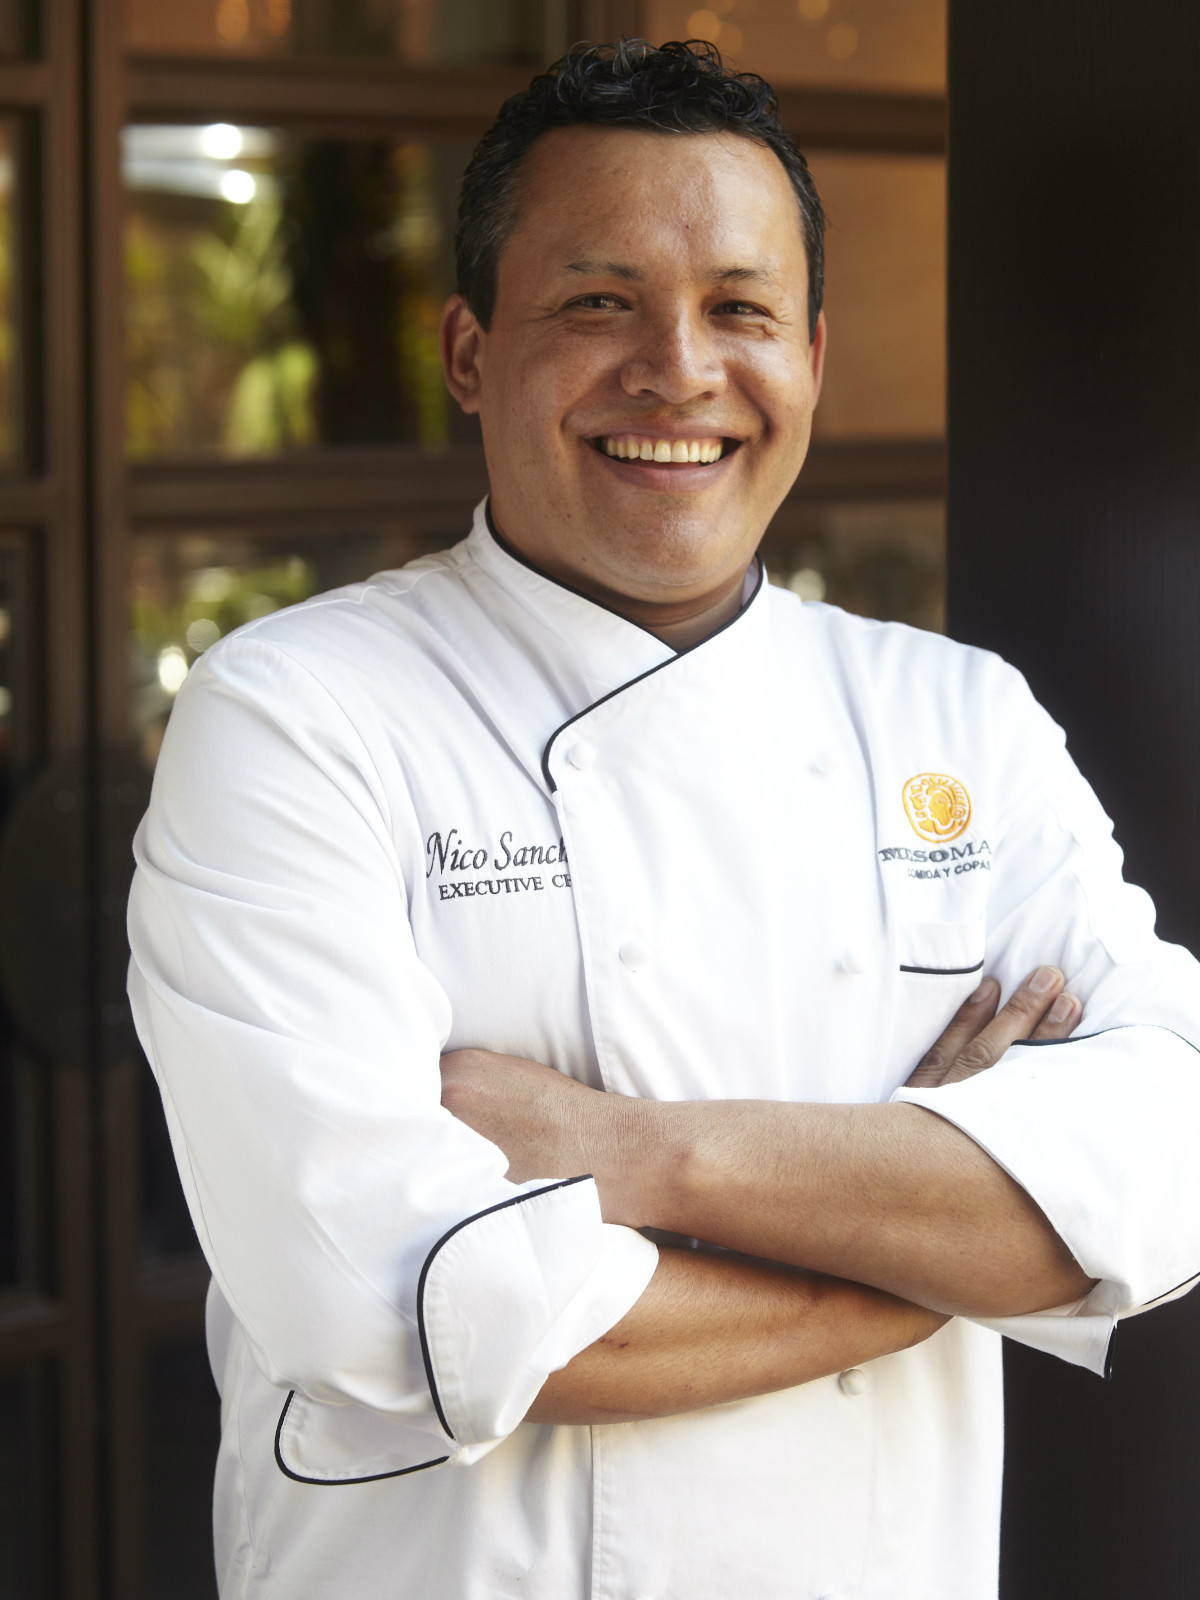 Dallas chef Nico Sanchez